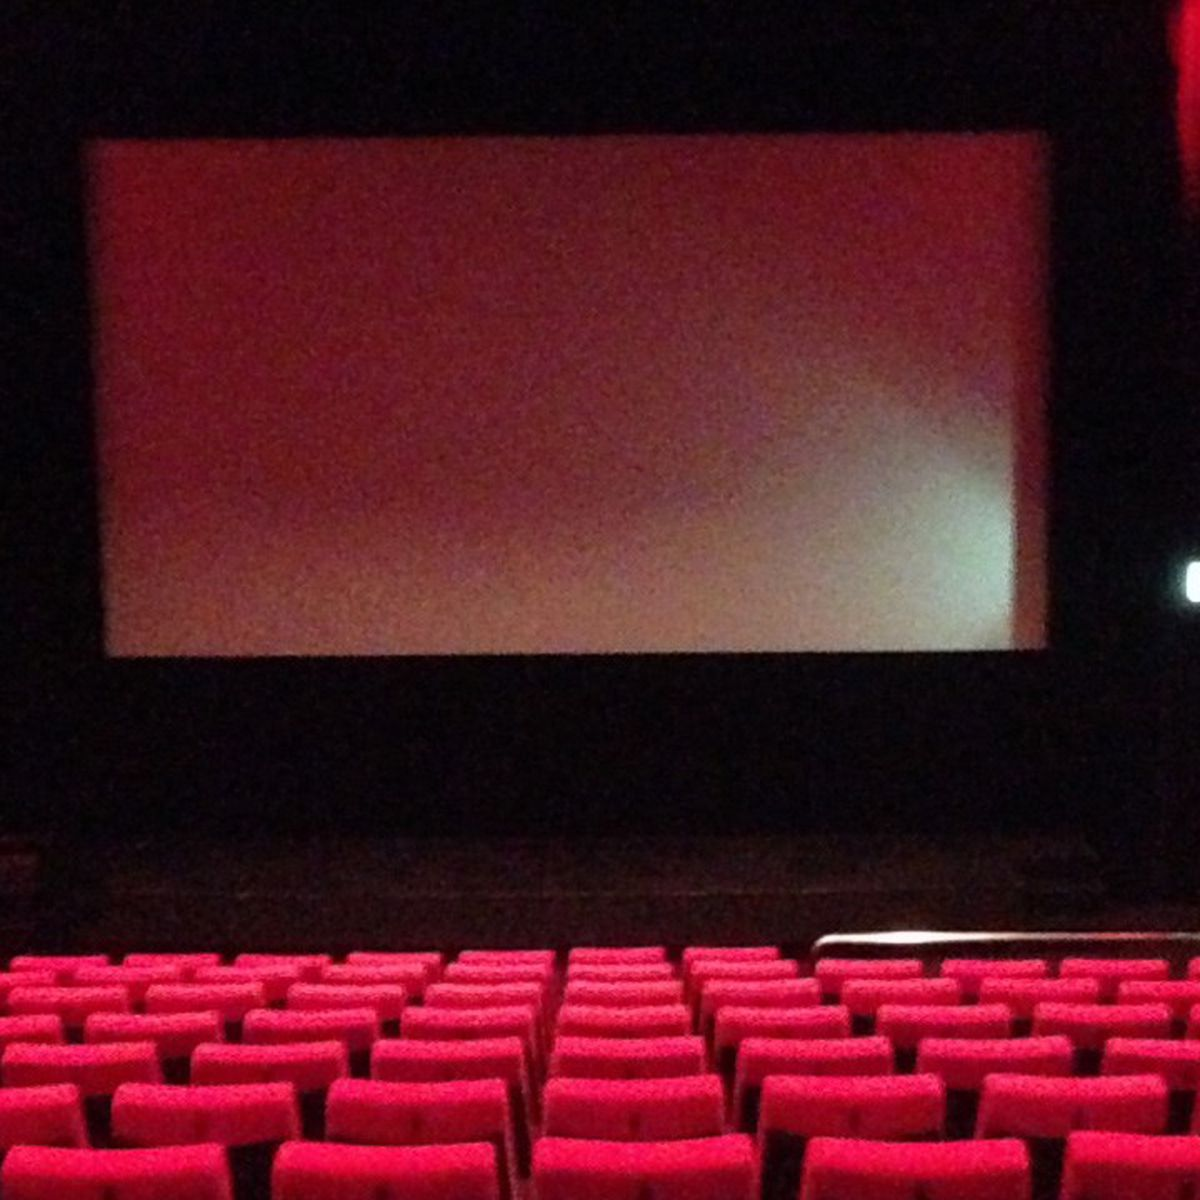 Check It Out A Movie Theater With Beds